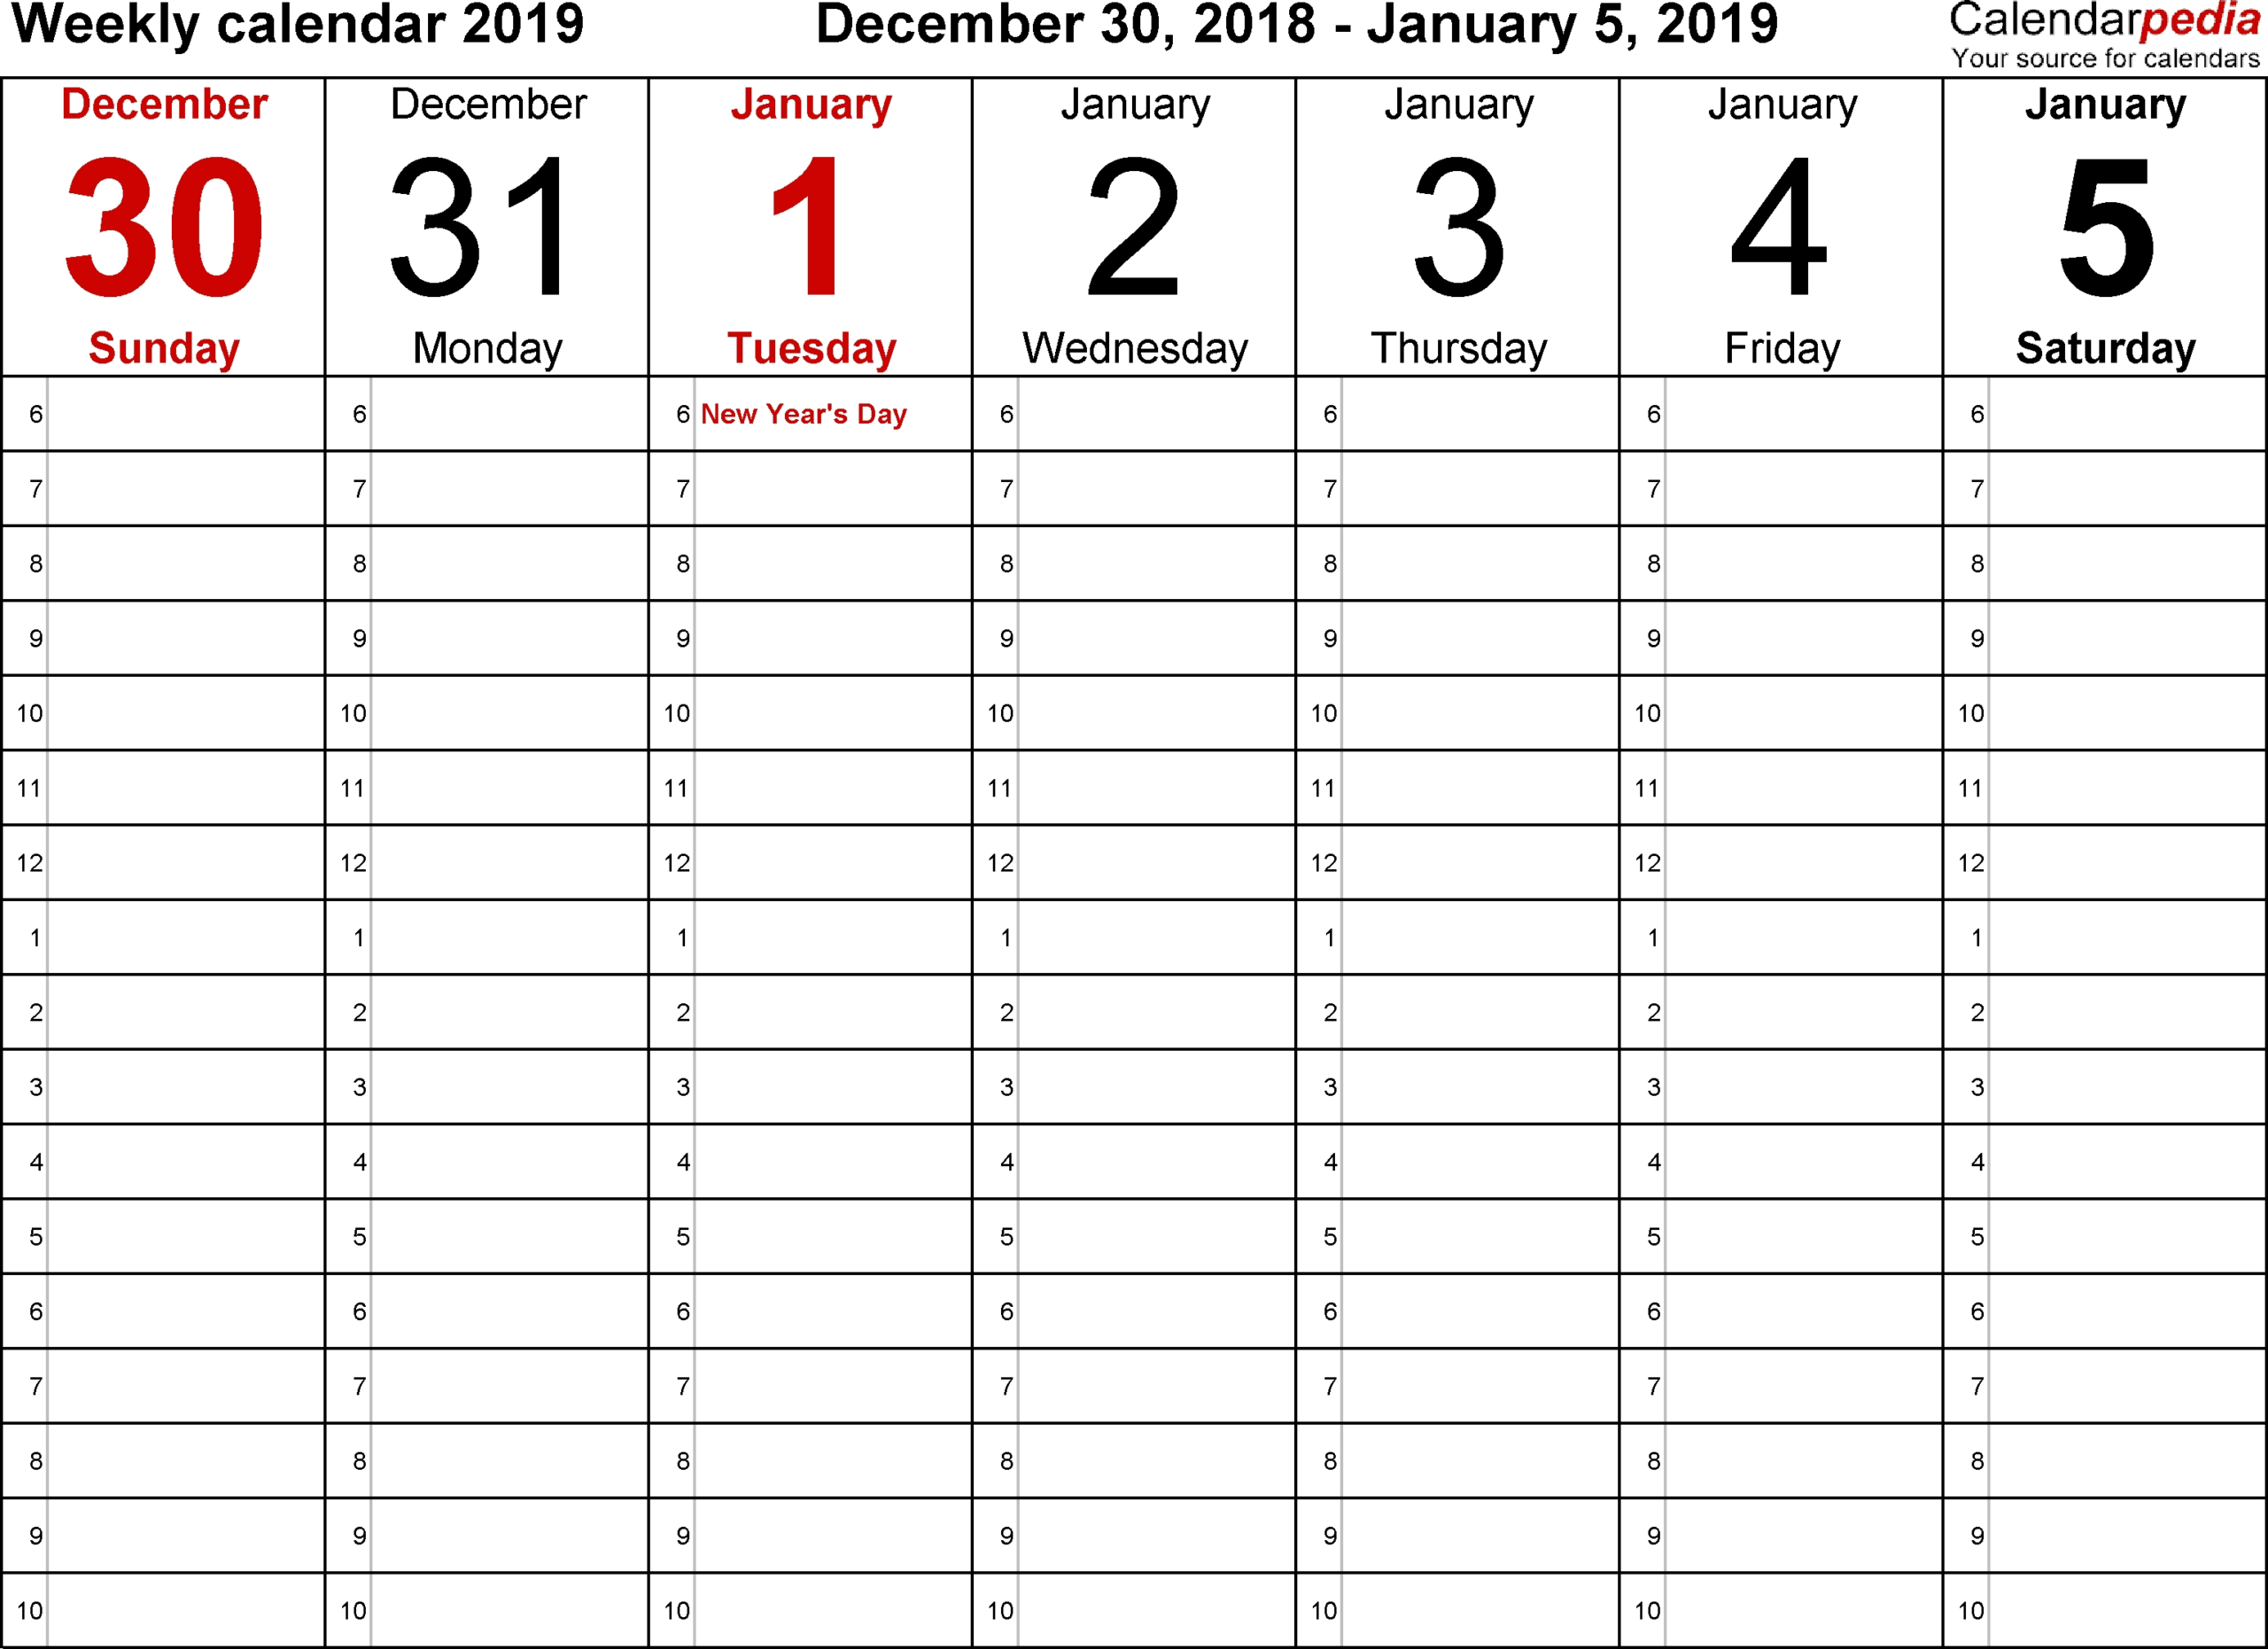 Blank Calendars To Print With Time Slots - Calendar